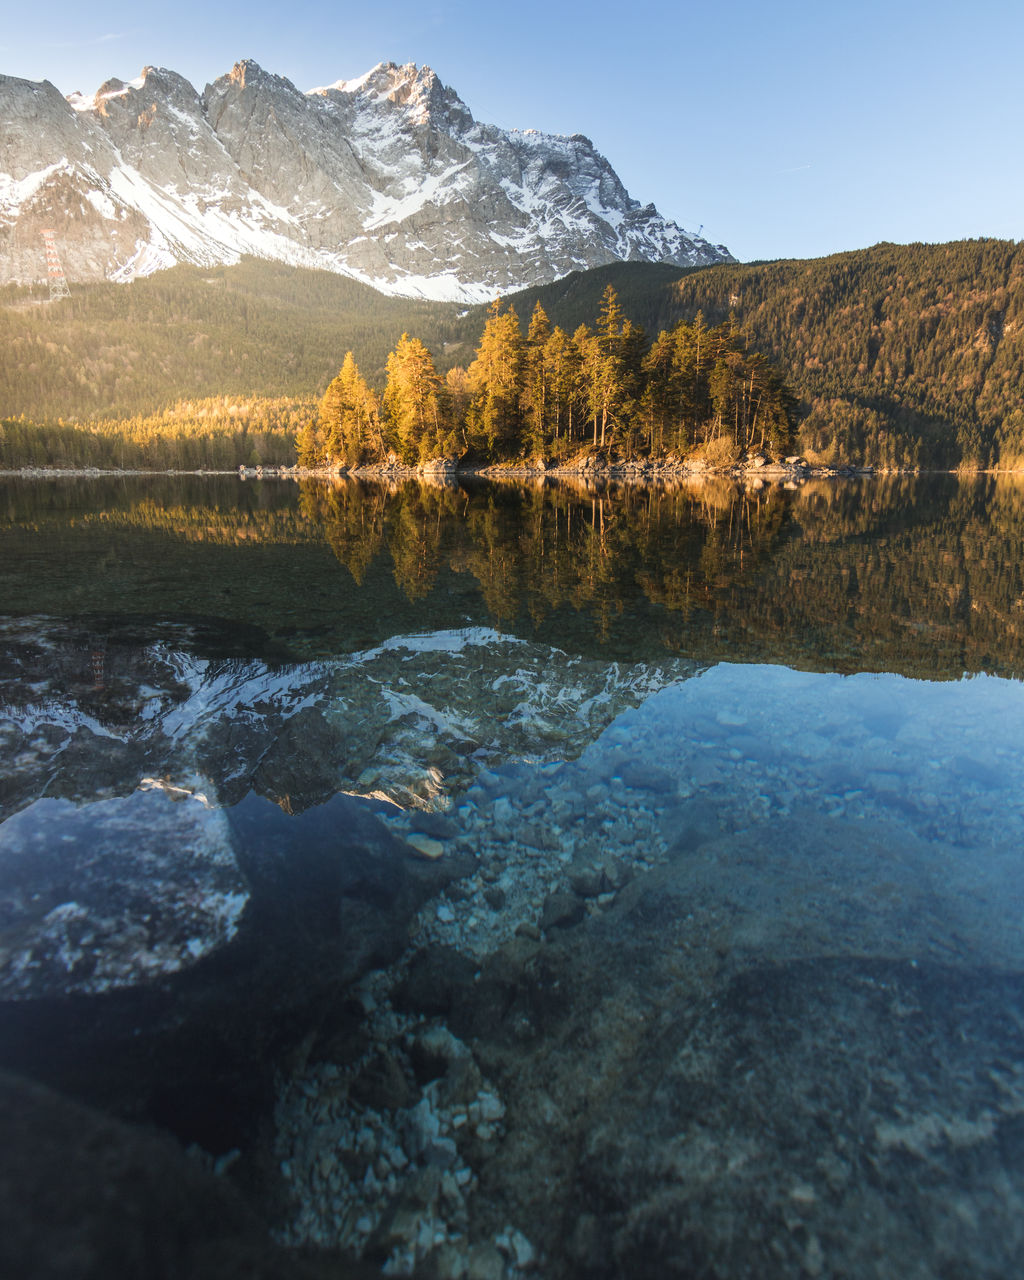 water, beauty in nature, mountain, scenics - nature, tranquil scene, tranquility, sky, rock, lake, nature, solid, non-urban scene, rock - object, day, no people, mountain range, reflection, idyllic, environment, outdoors, flowing water, mountain peak